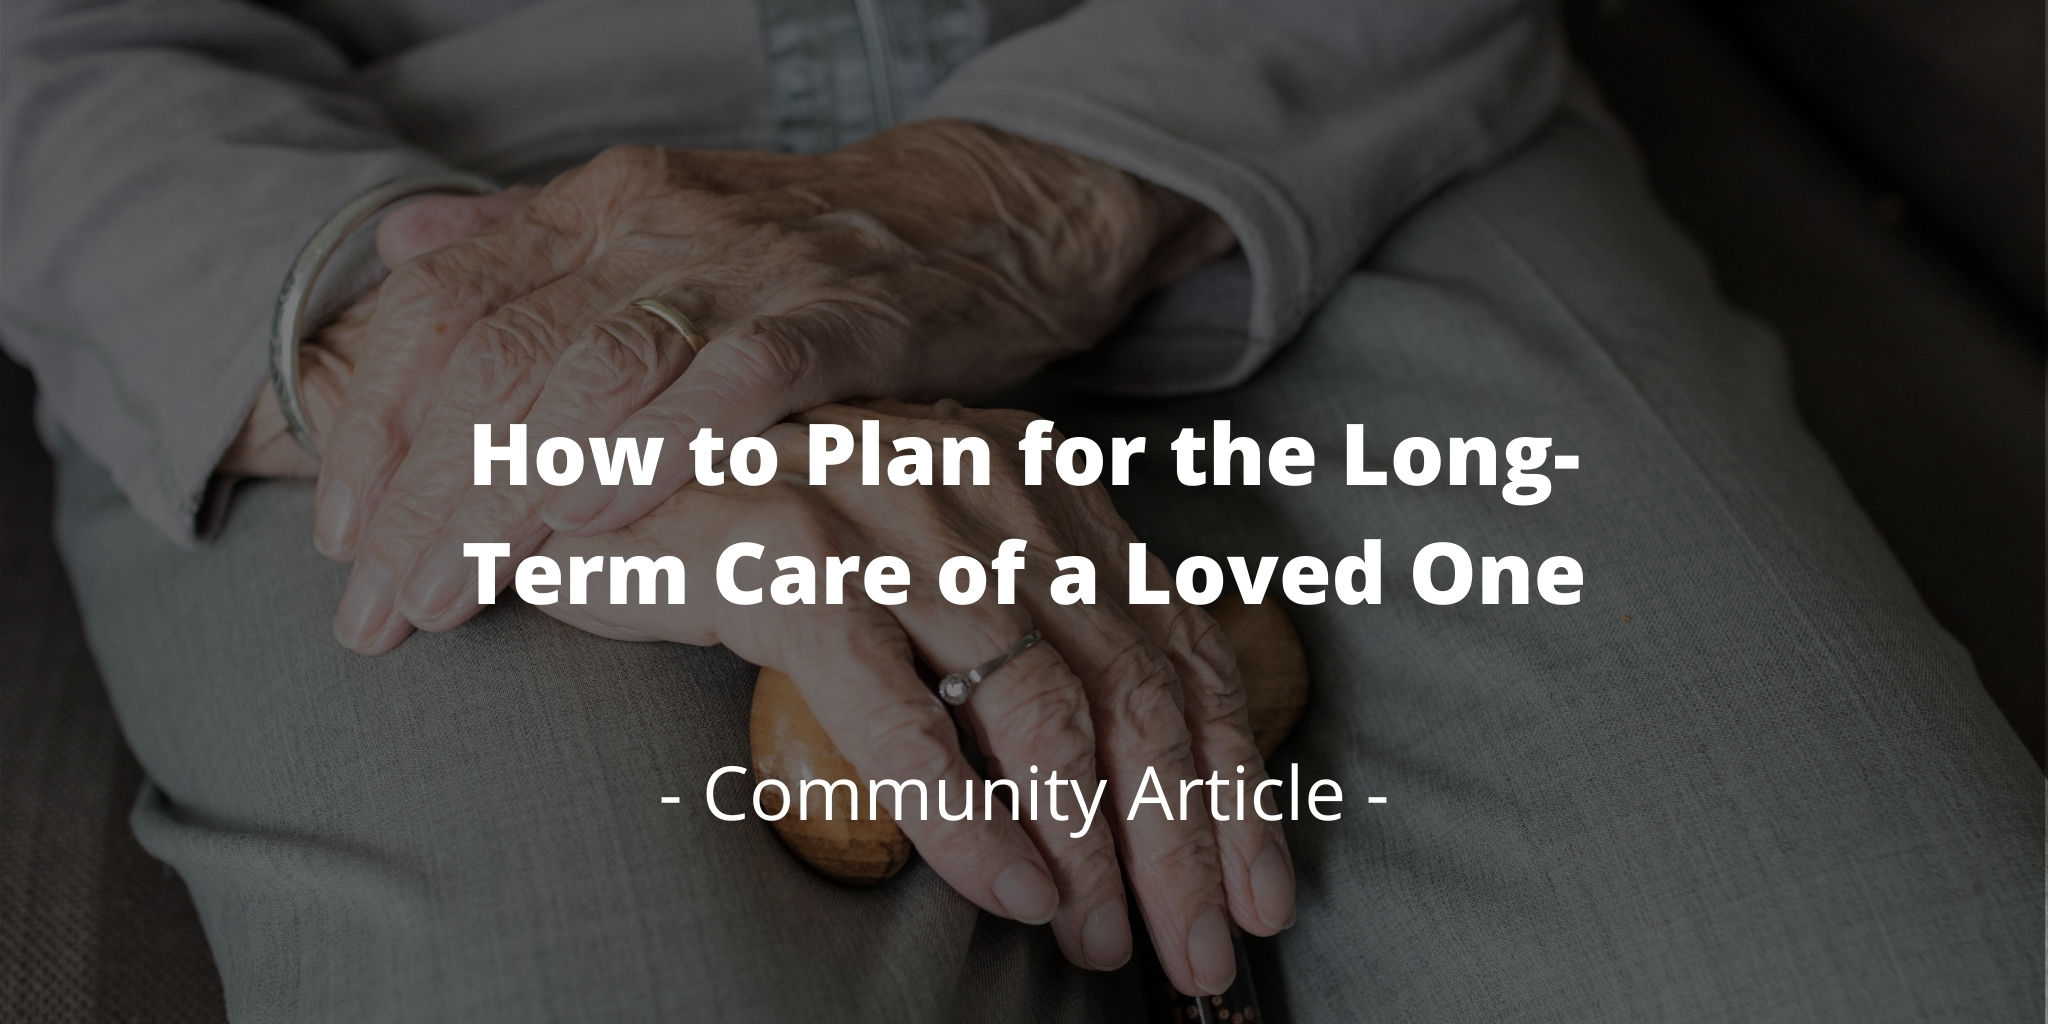 How to Plan for the Long-Term Care of a Loved One